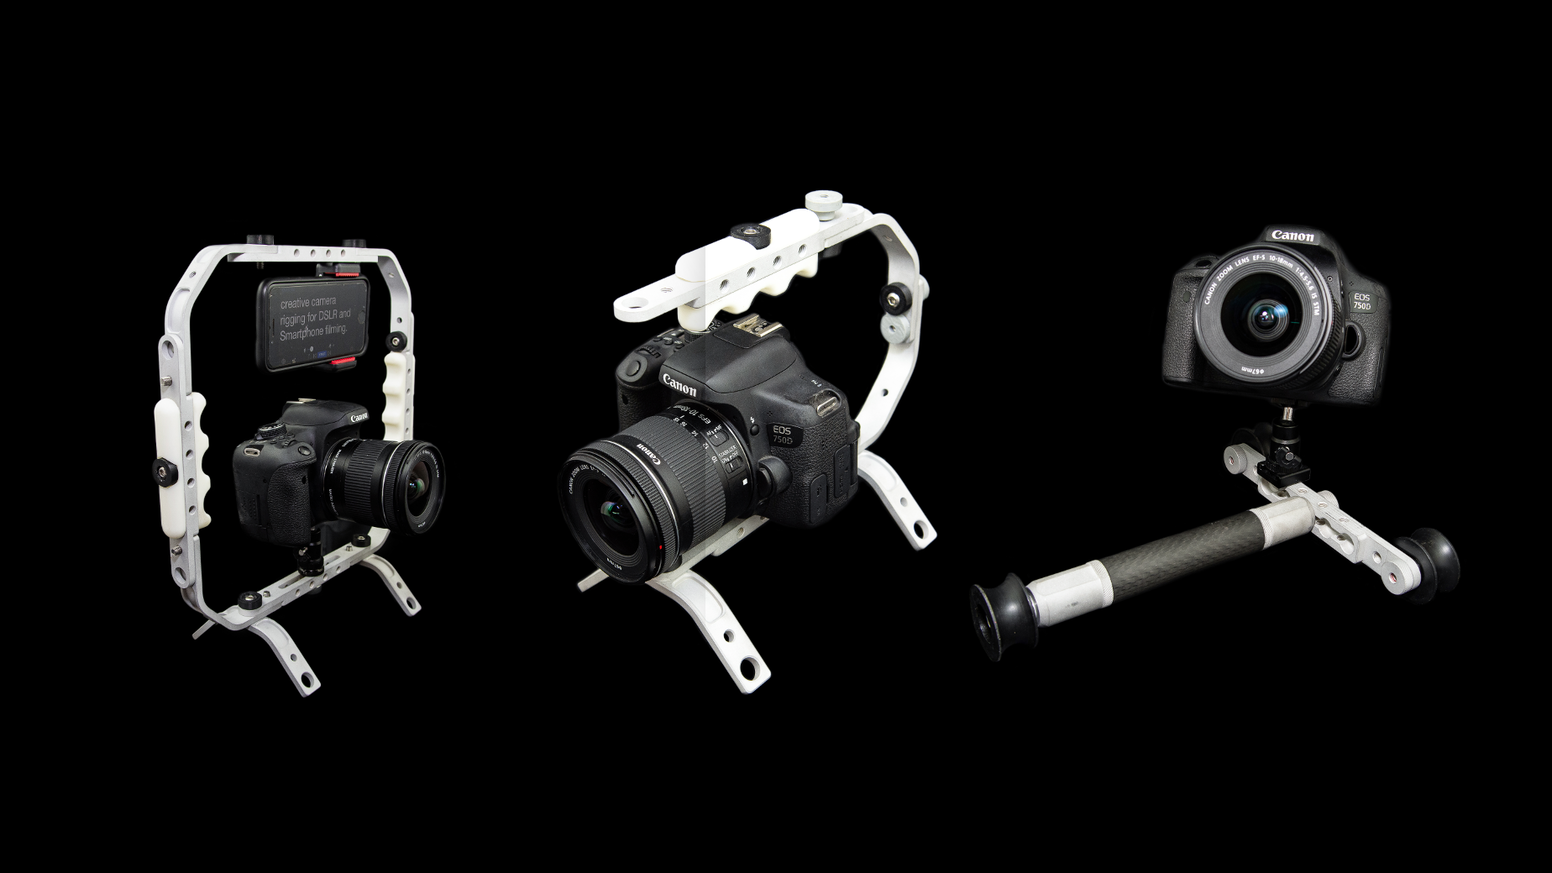 PhORM is the all-in-one solution to creative camera rigging for DSLR and smartphone filming.